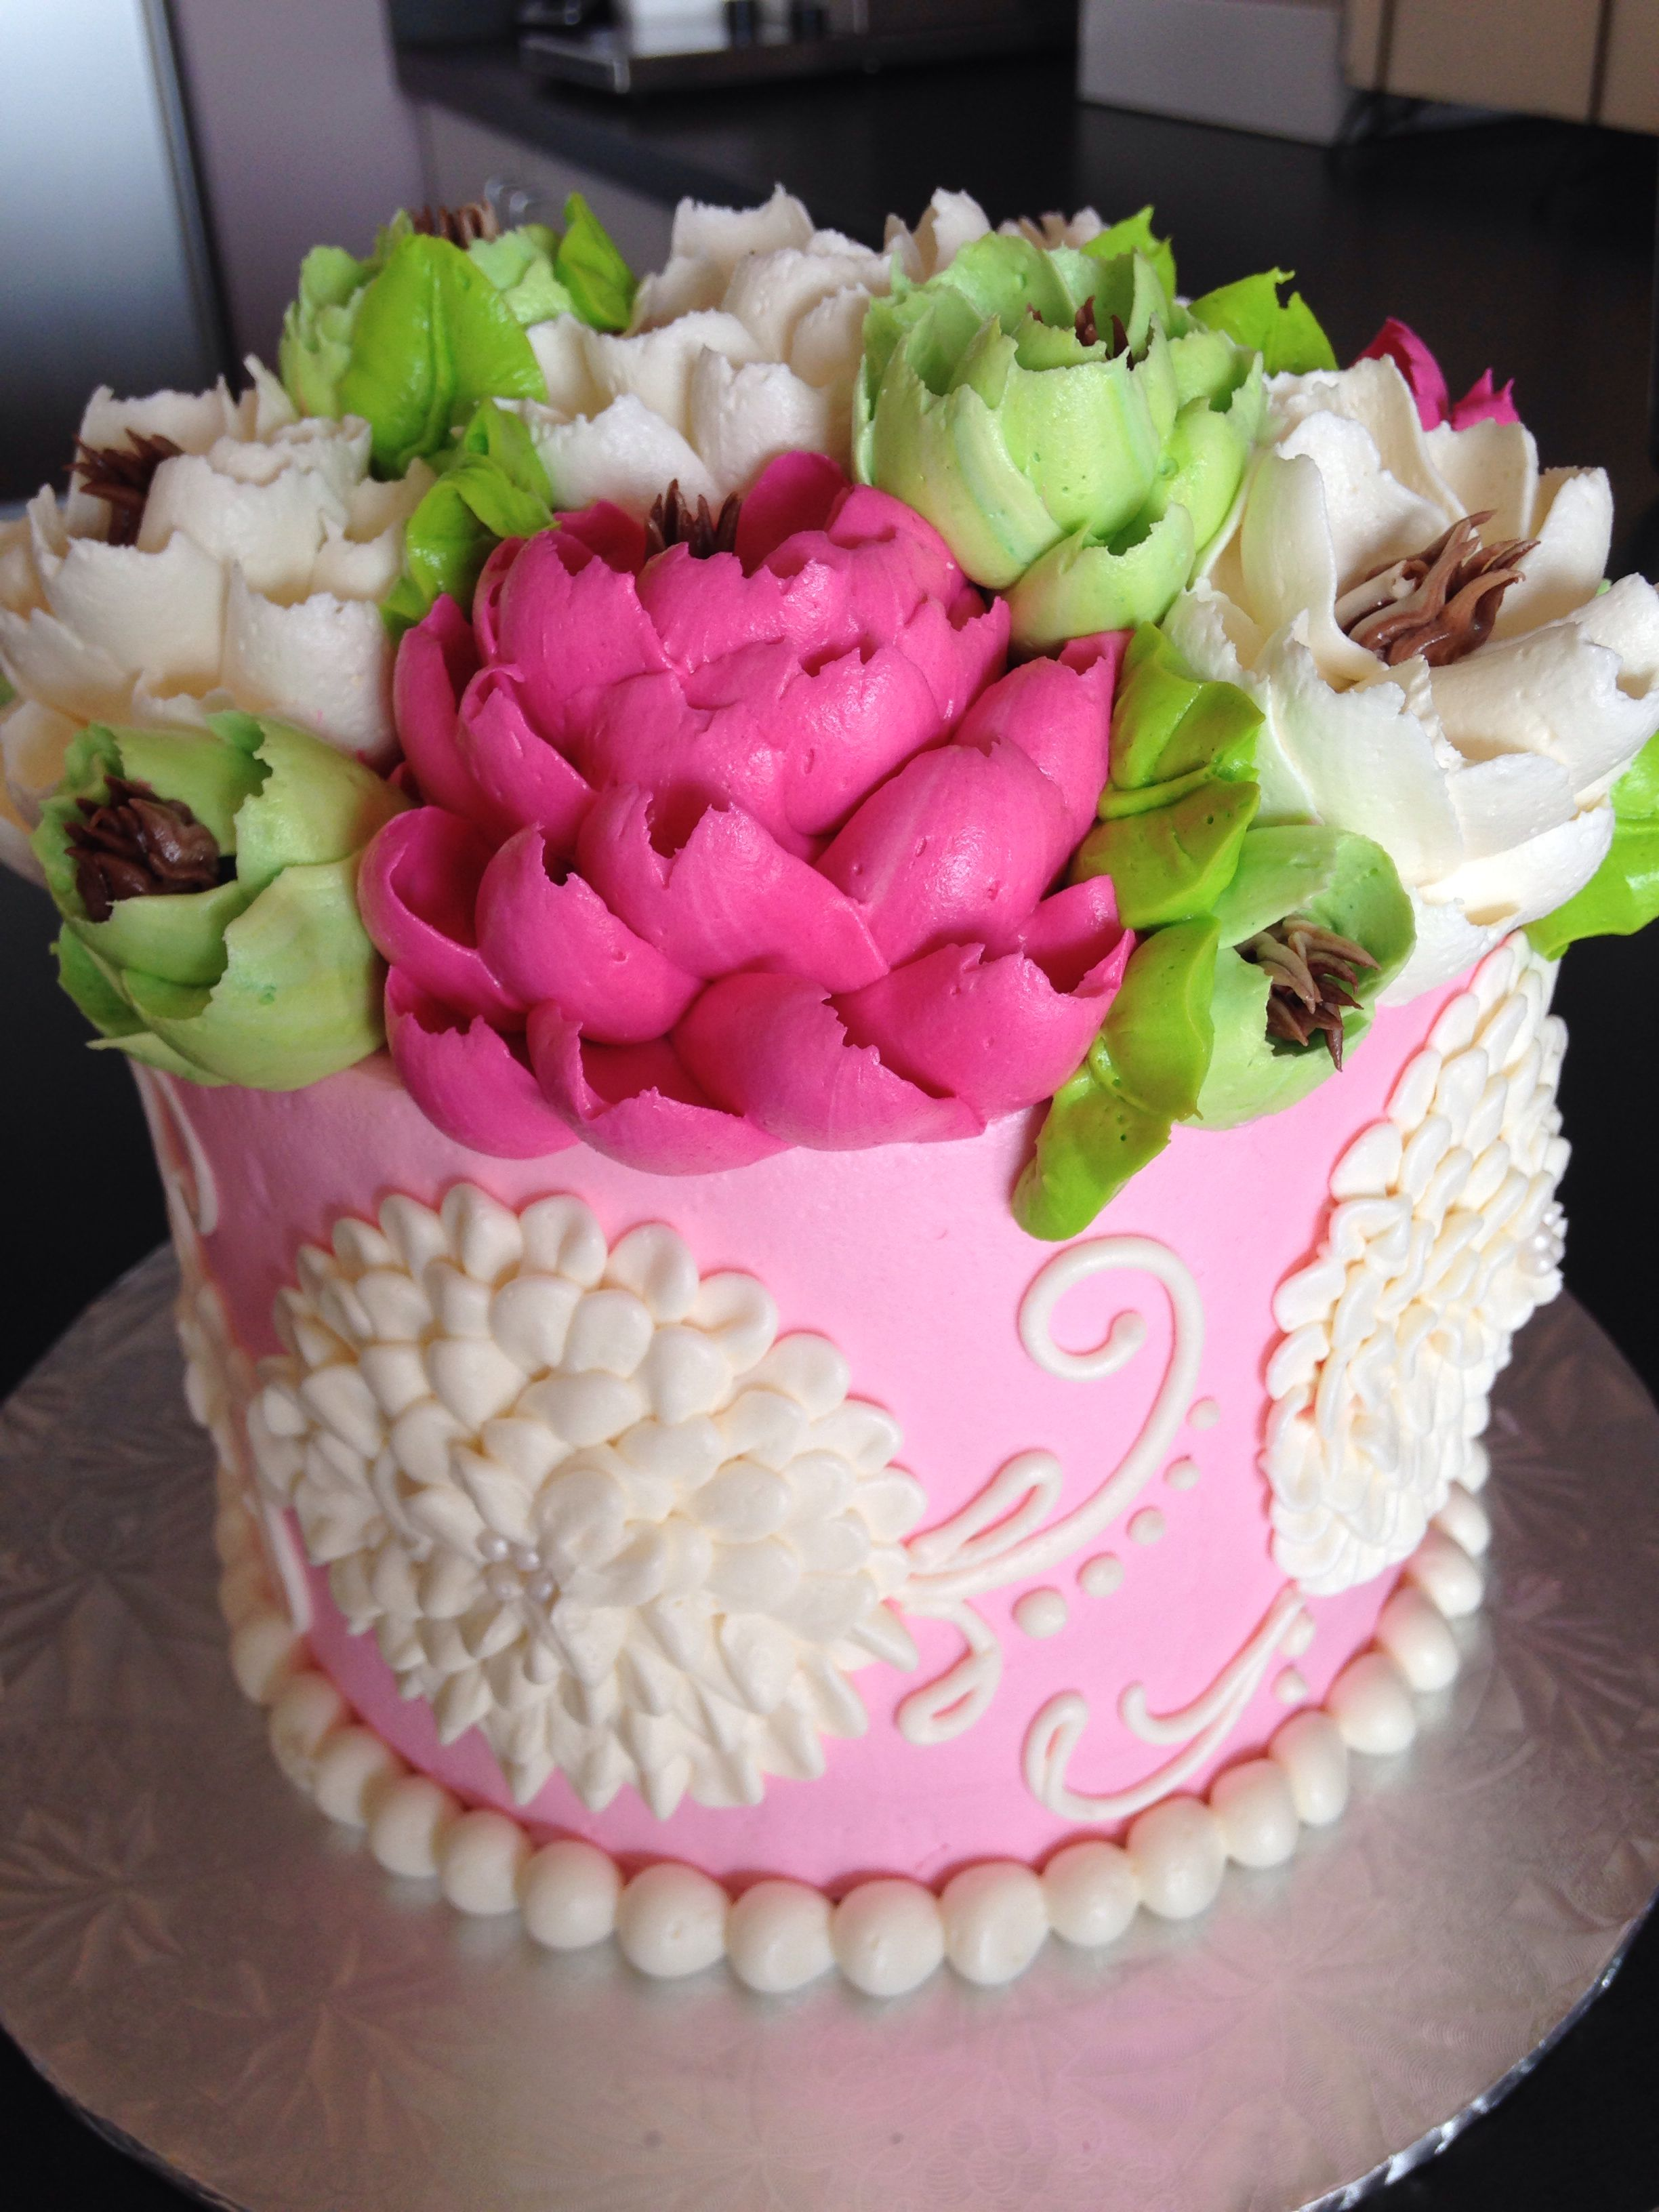 Buttercream pom pom piping technique by the white flower cake buttercream pom pom piping technique by the white flower cake shoppe online tutorials available monday dhlflorist Image collections